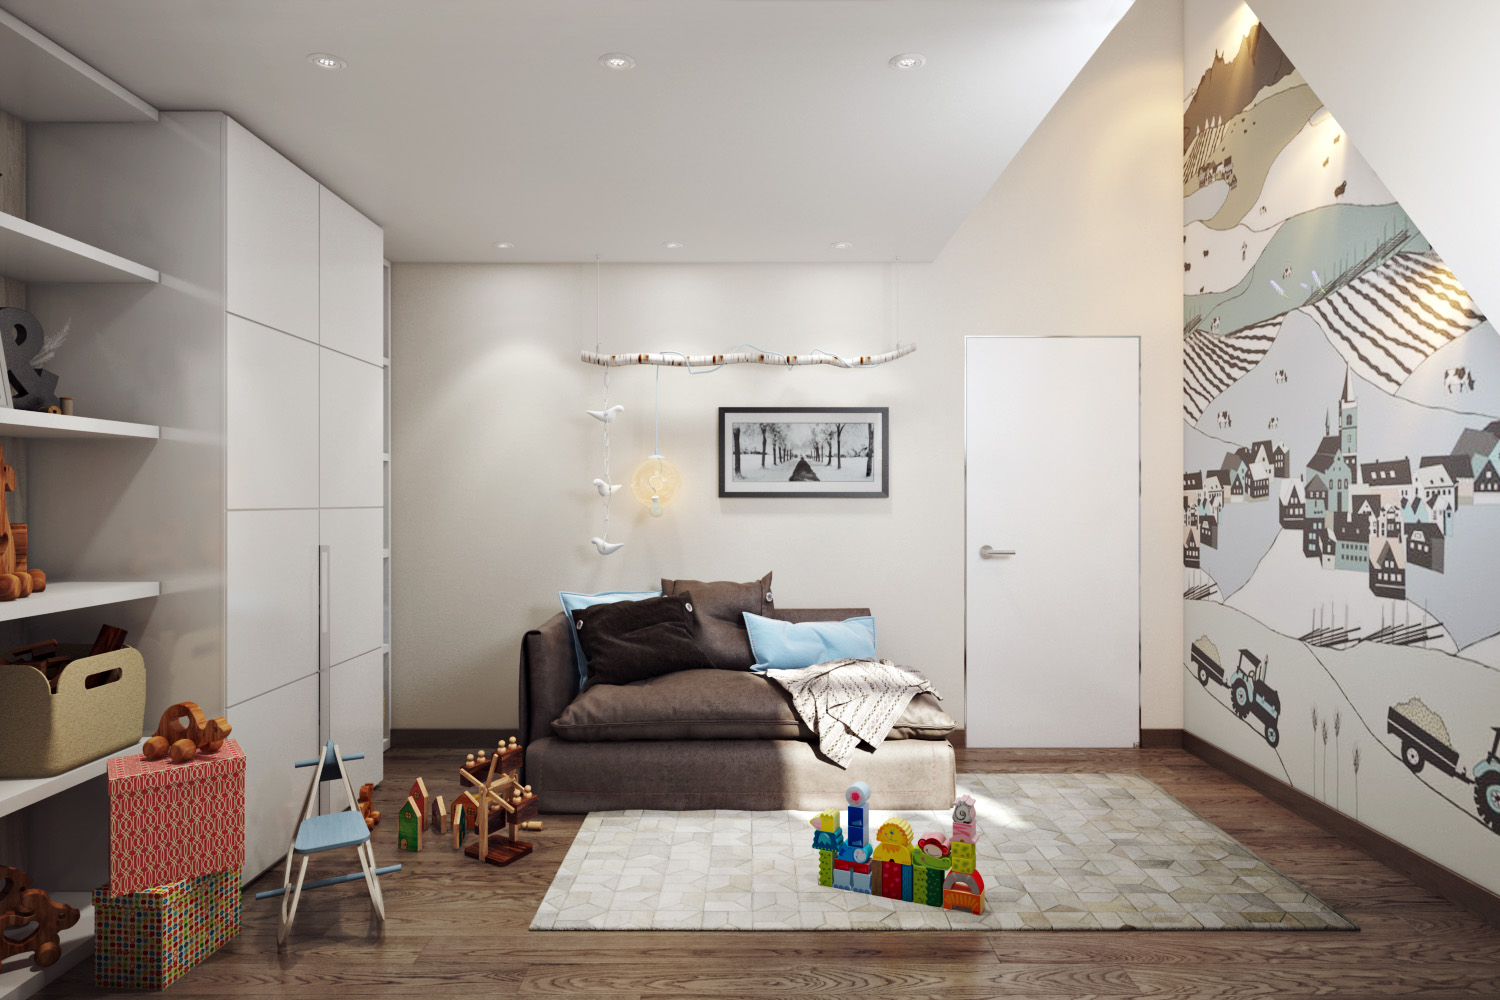 02-The-space-is-rather-small-but-theres-everything-necessary-and-a-lot-of-storage-space